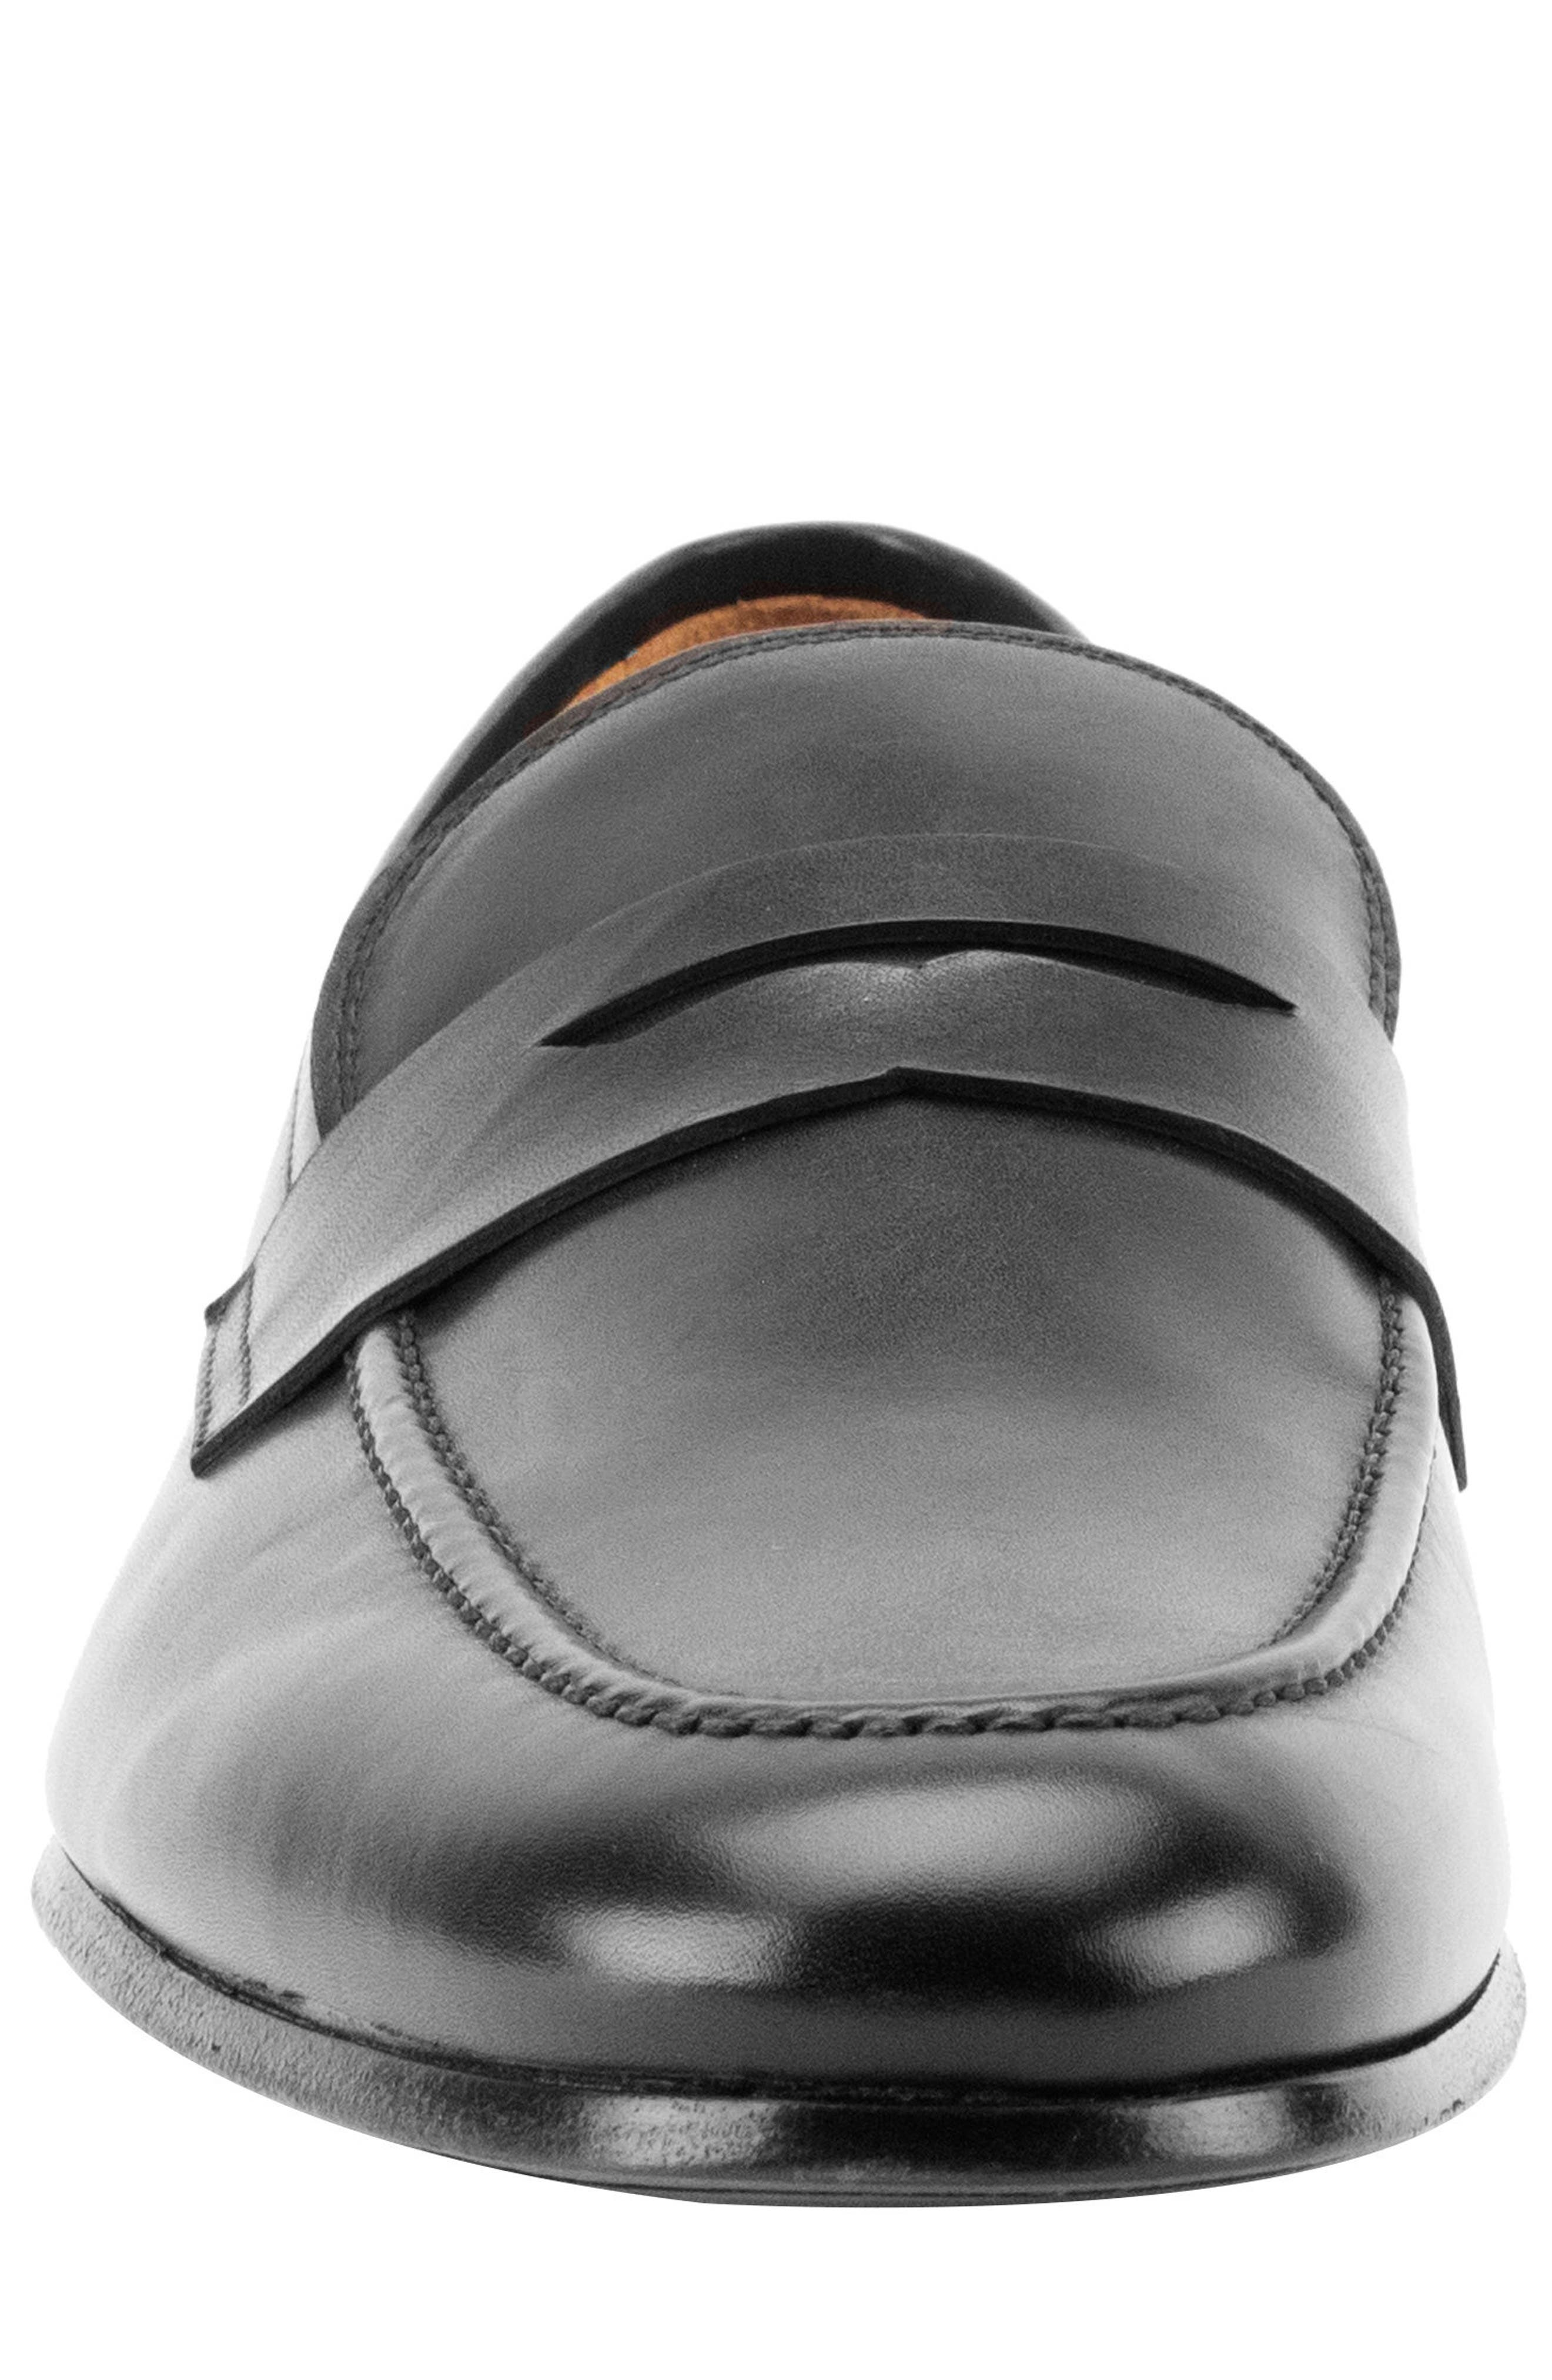 Coleman Apron Toe Penny Loafer,                             Alternate thumbnail 4, color,                             BLACK LEATHER